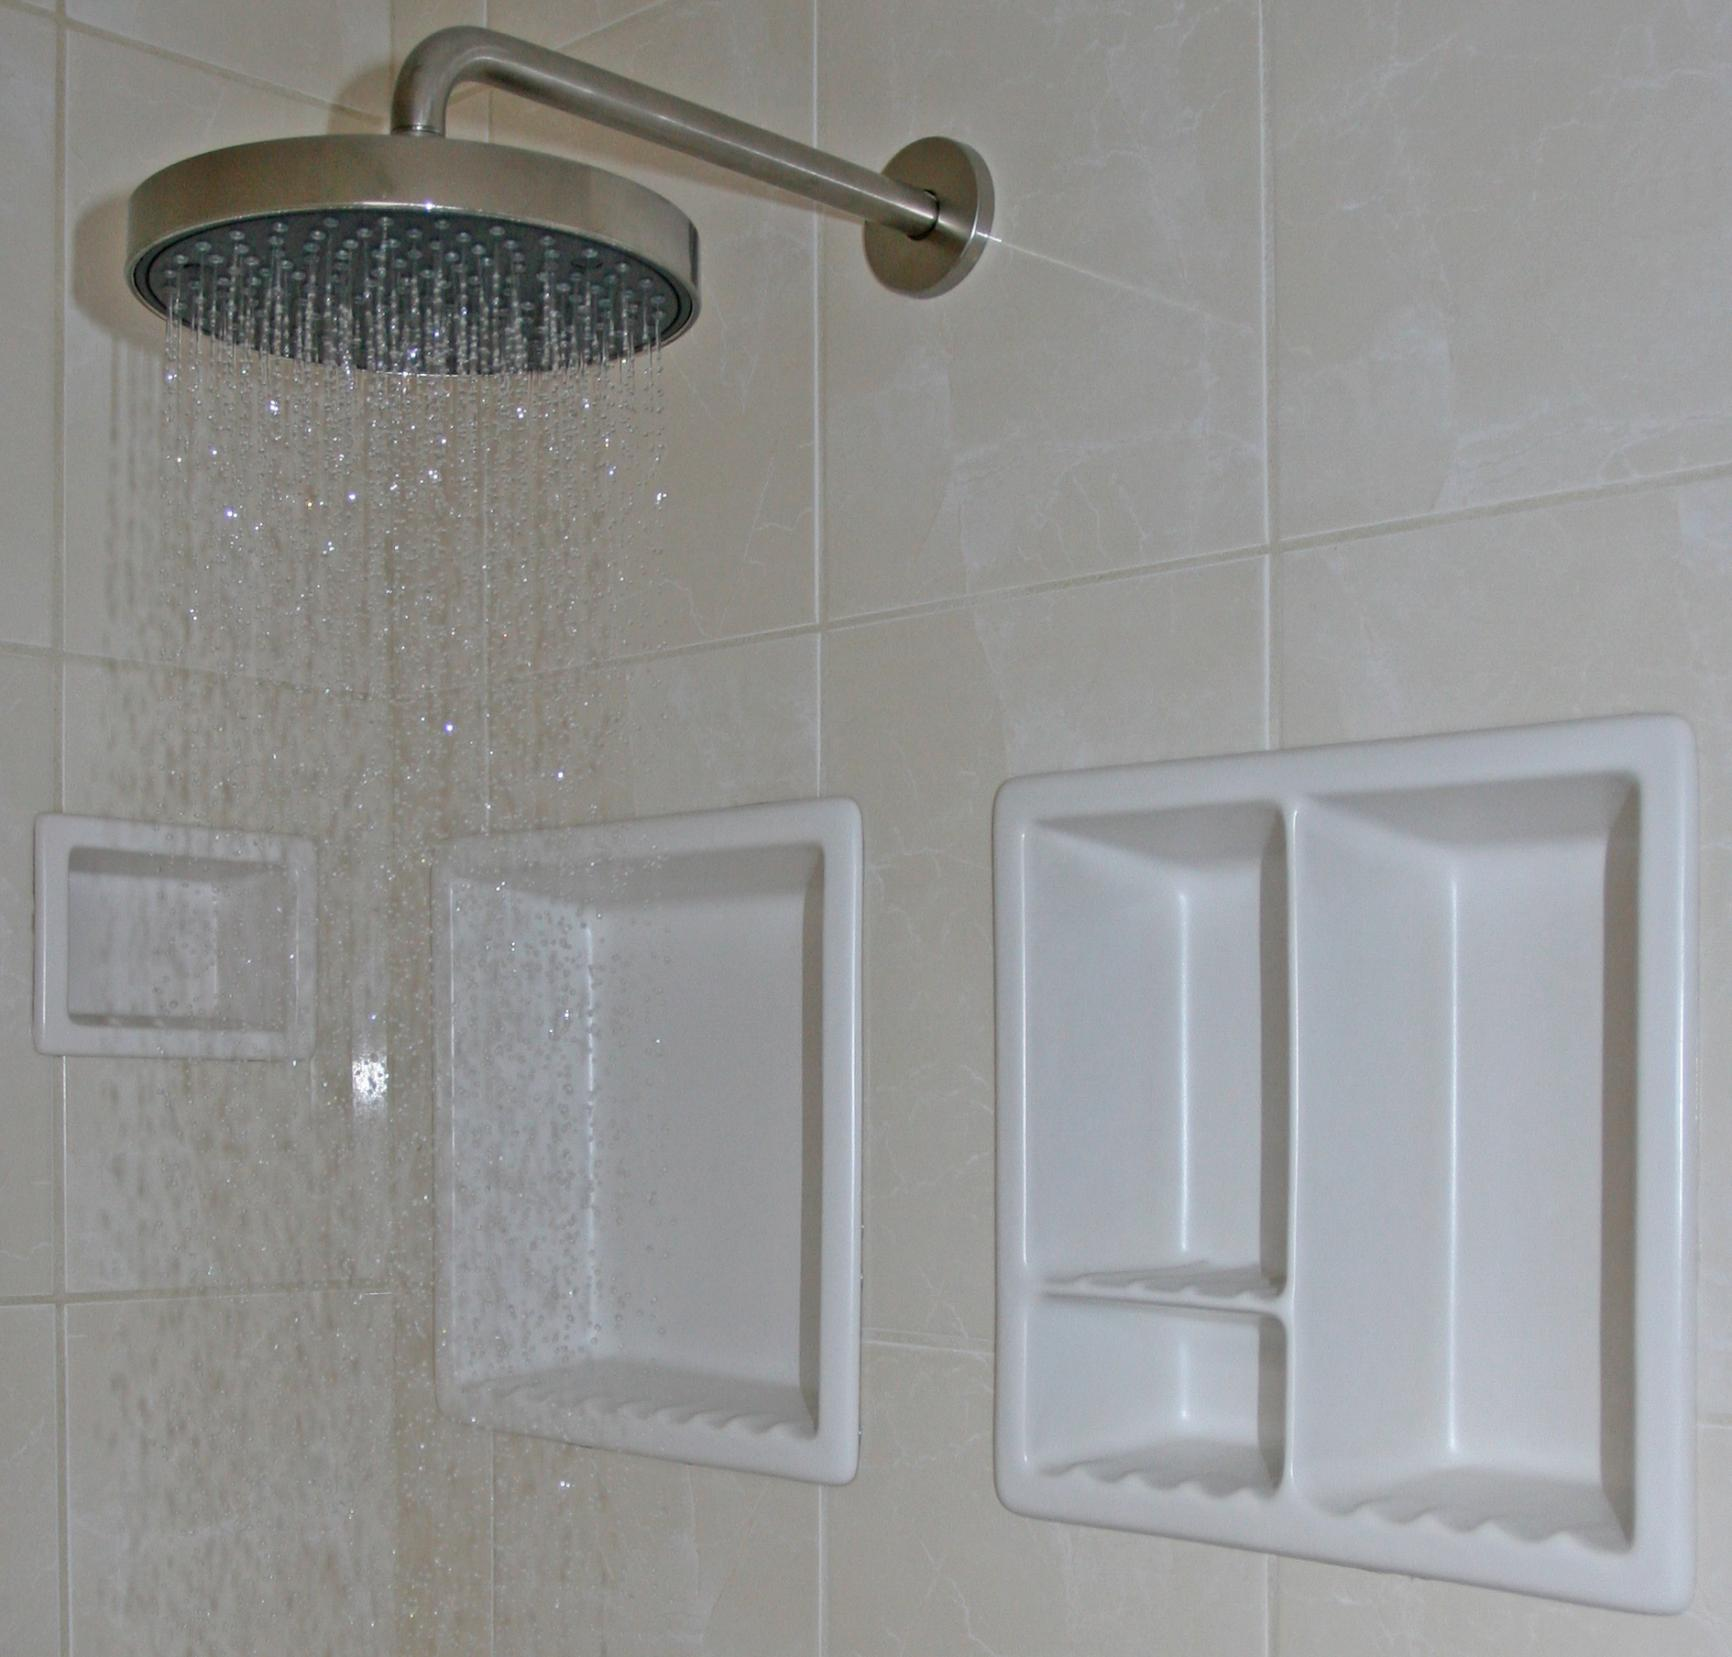 Recessed Soap Shampoo Niche Tiling Contractor Talk